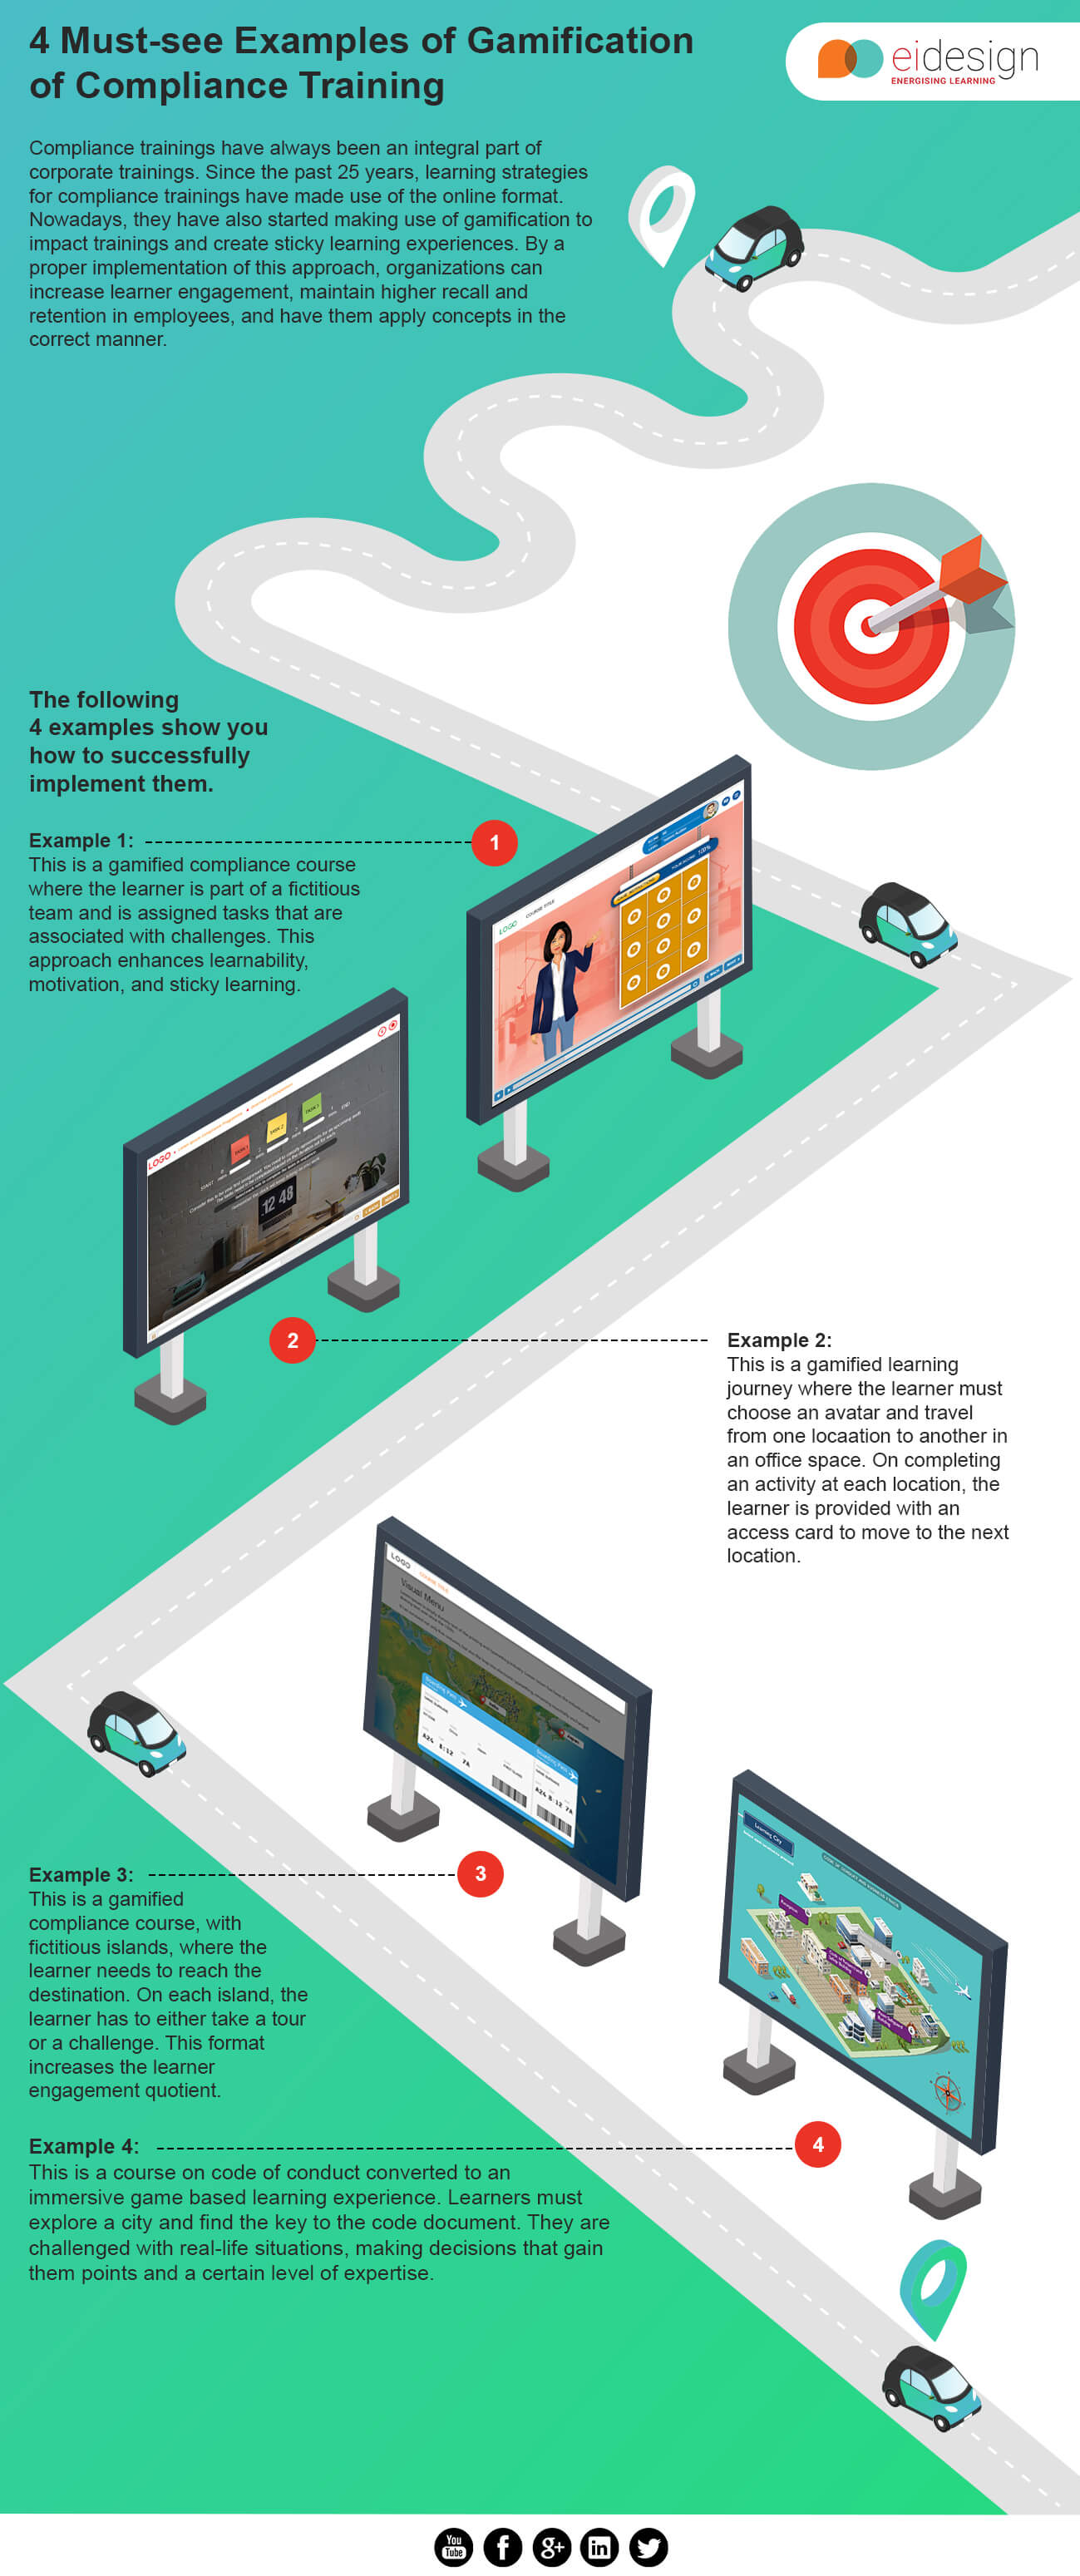 4 Must-See Examples Of Gamification Of Compliance Training Infographic